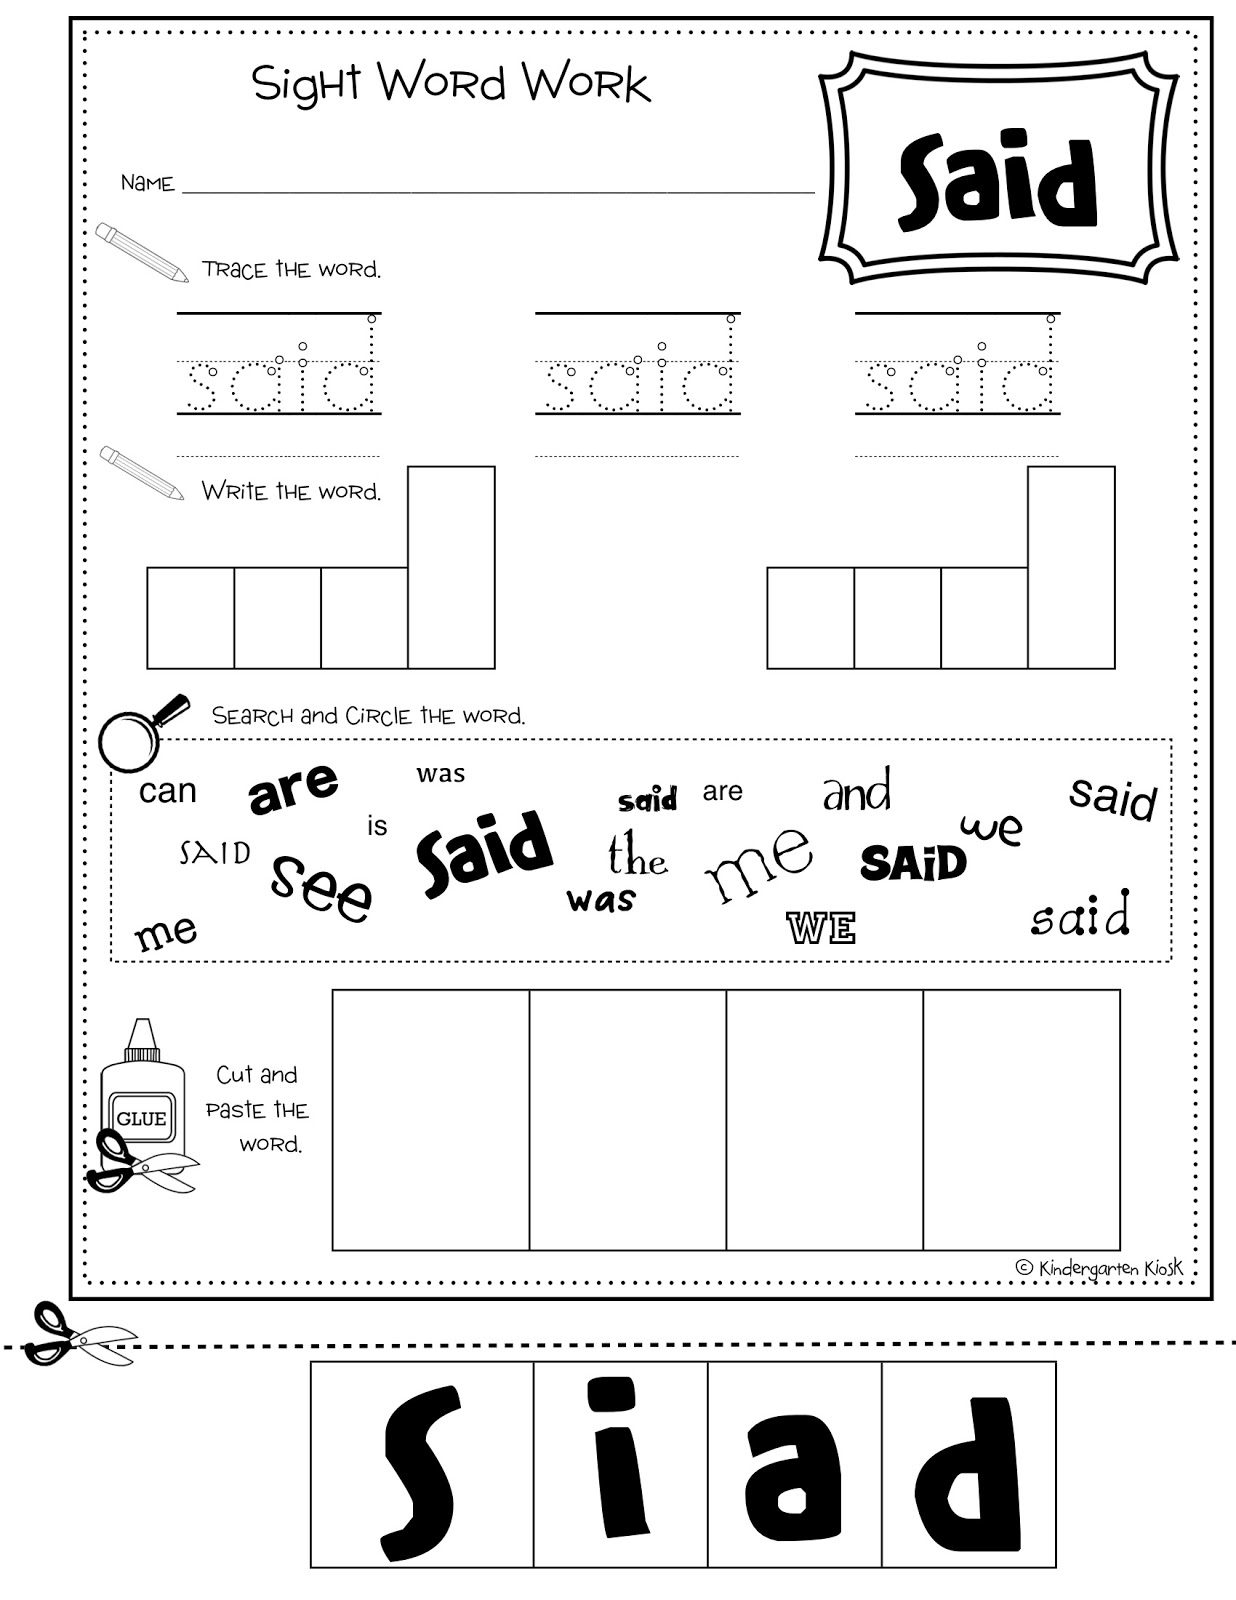 worksheet Workbook sight Kiosk: Sight Task but Multi word  Word Kindergarten